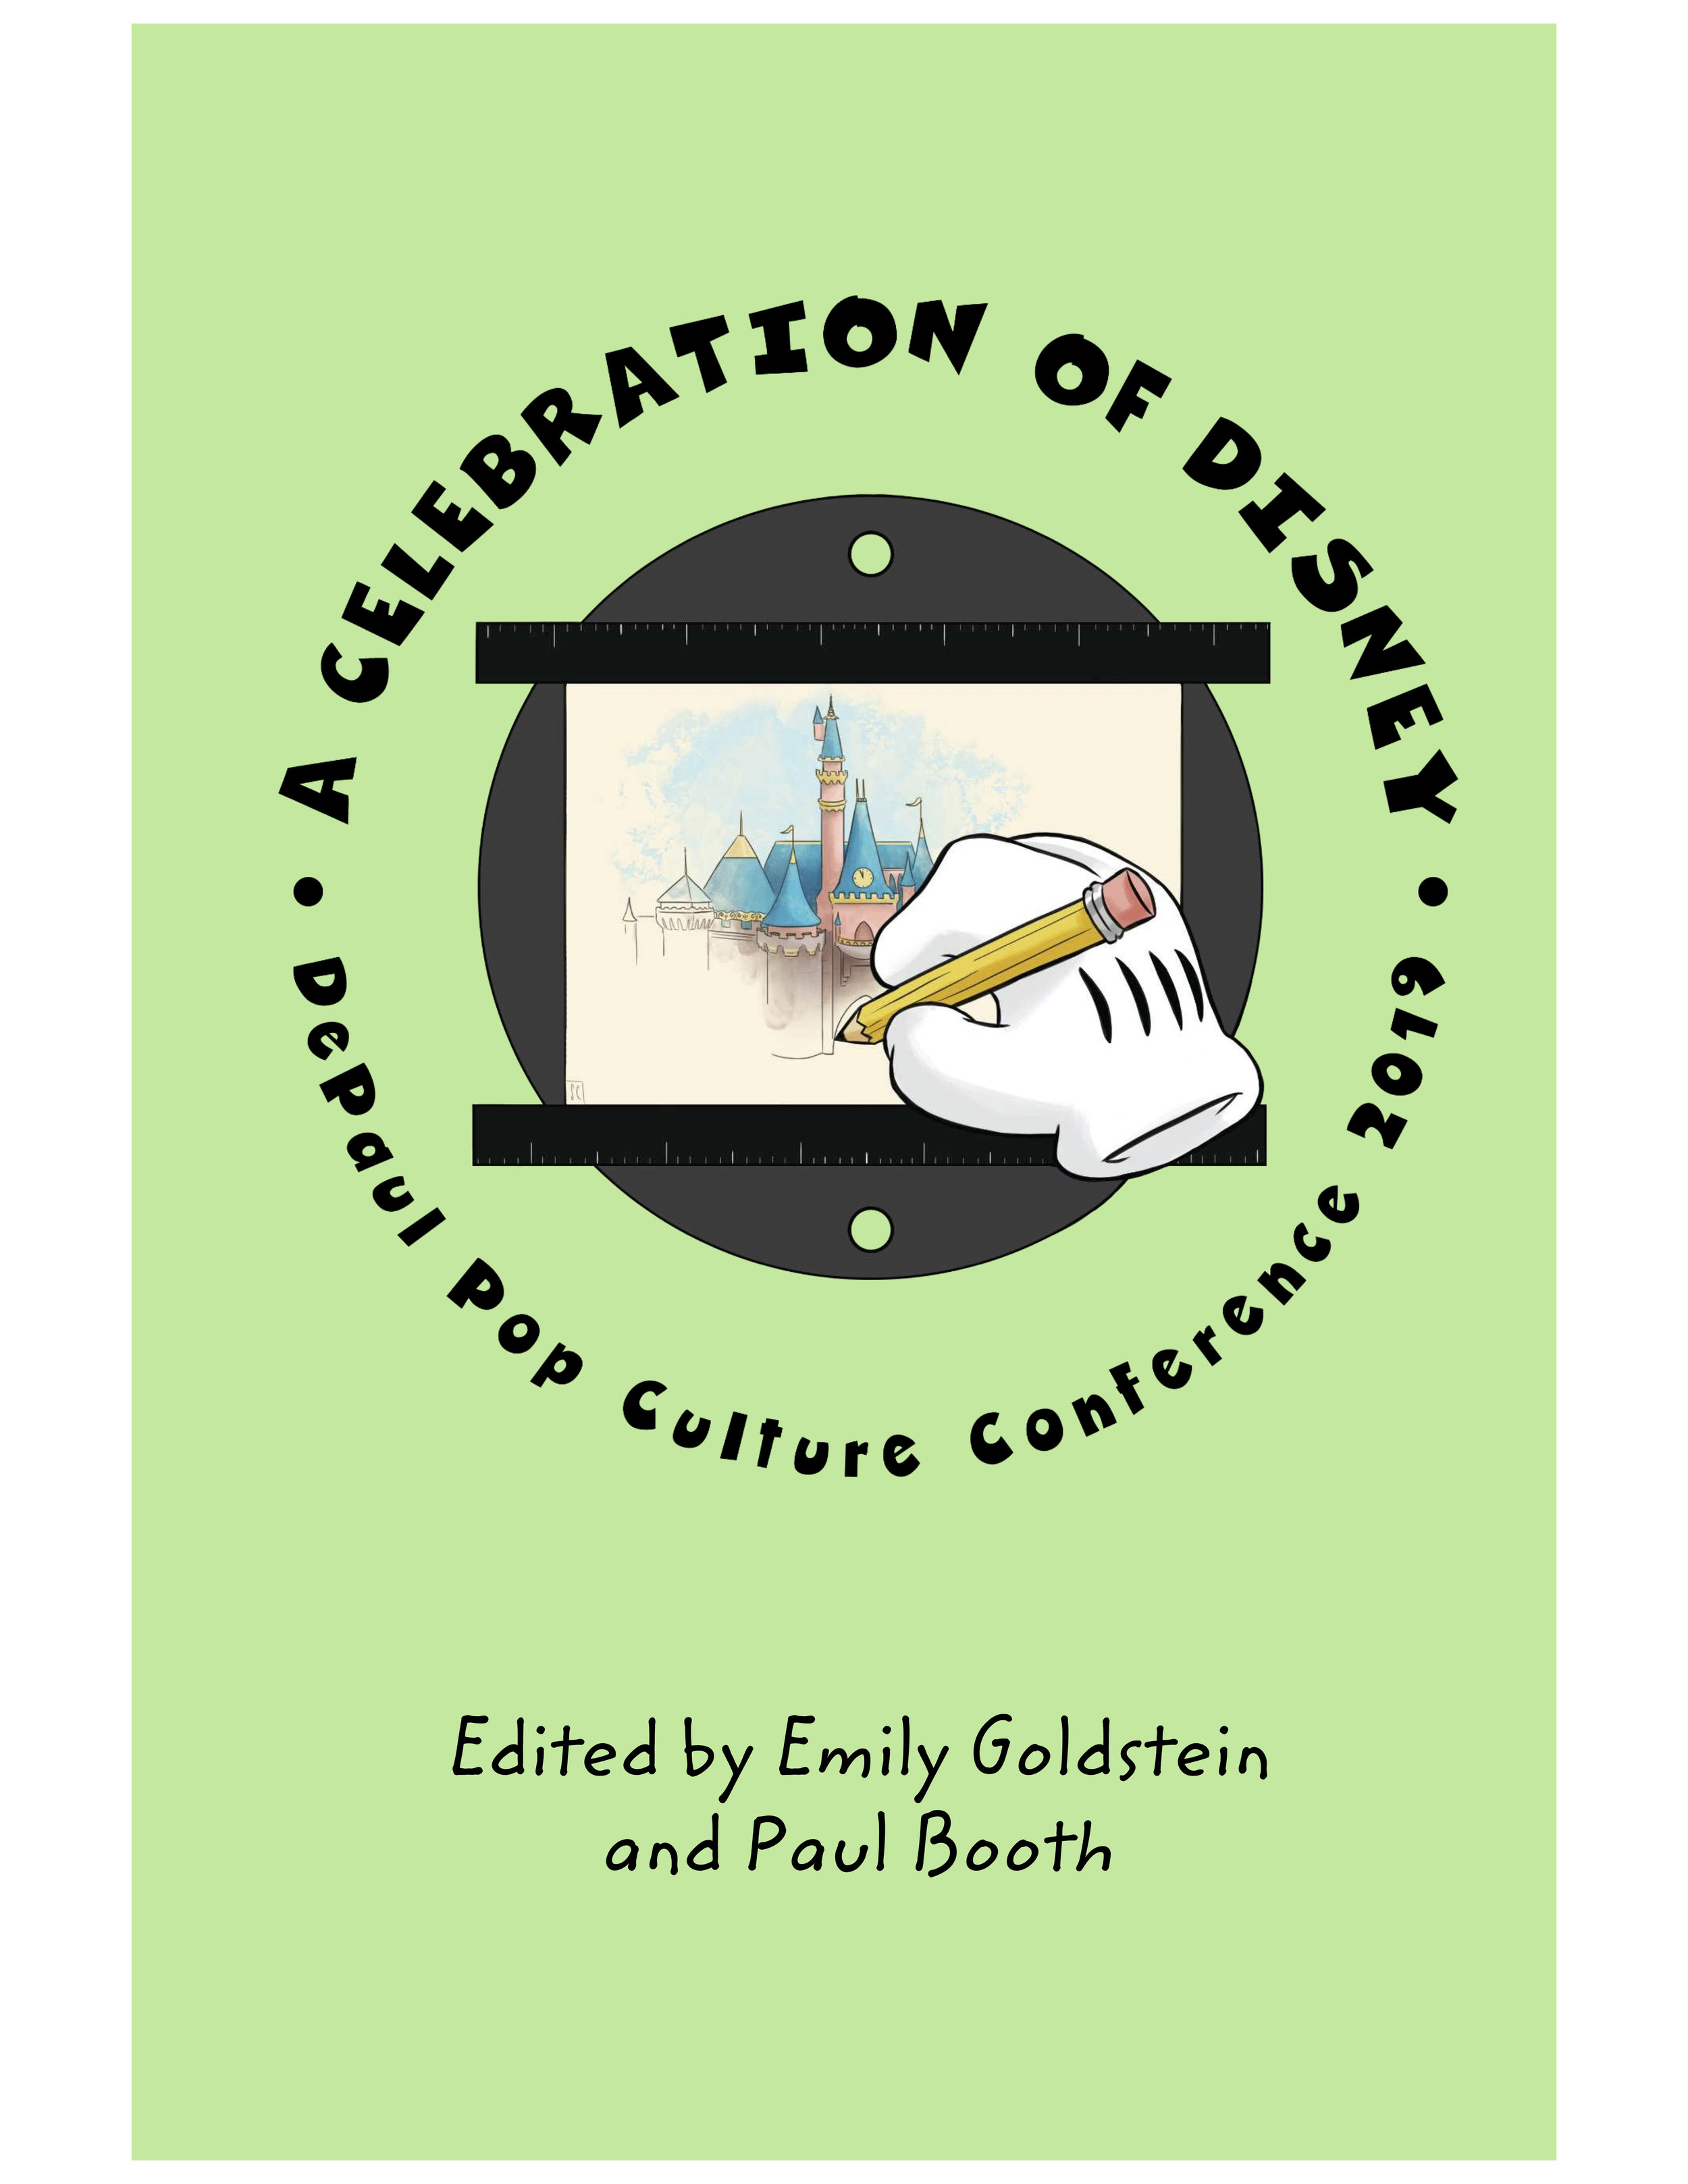 A Celebration of Disney - In celebration of the seventh annual DePaul Pop Culture Conference, this book collects essays, thoughts, and contributions from participants at the 2019 Celebration of Disney. With a contributions from many speakers, including the keynotes!Proceeds from the sale of this volume benefit Global Girl Media!You can purchase the book at:Amazon.comBlurb.com